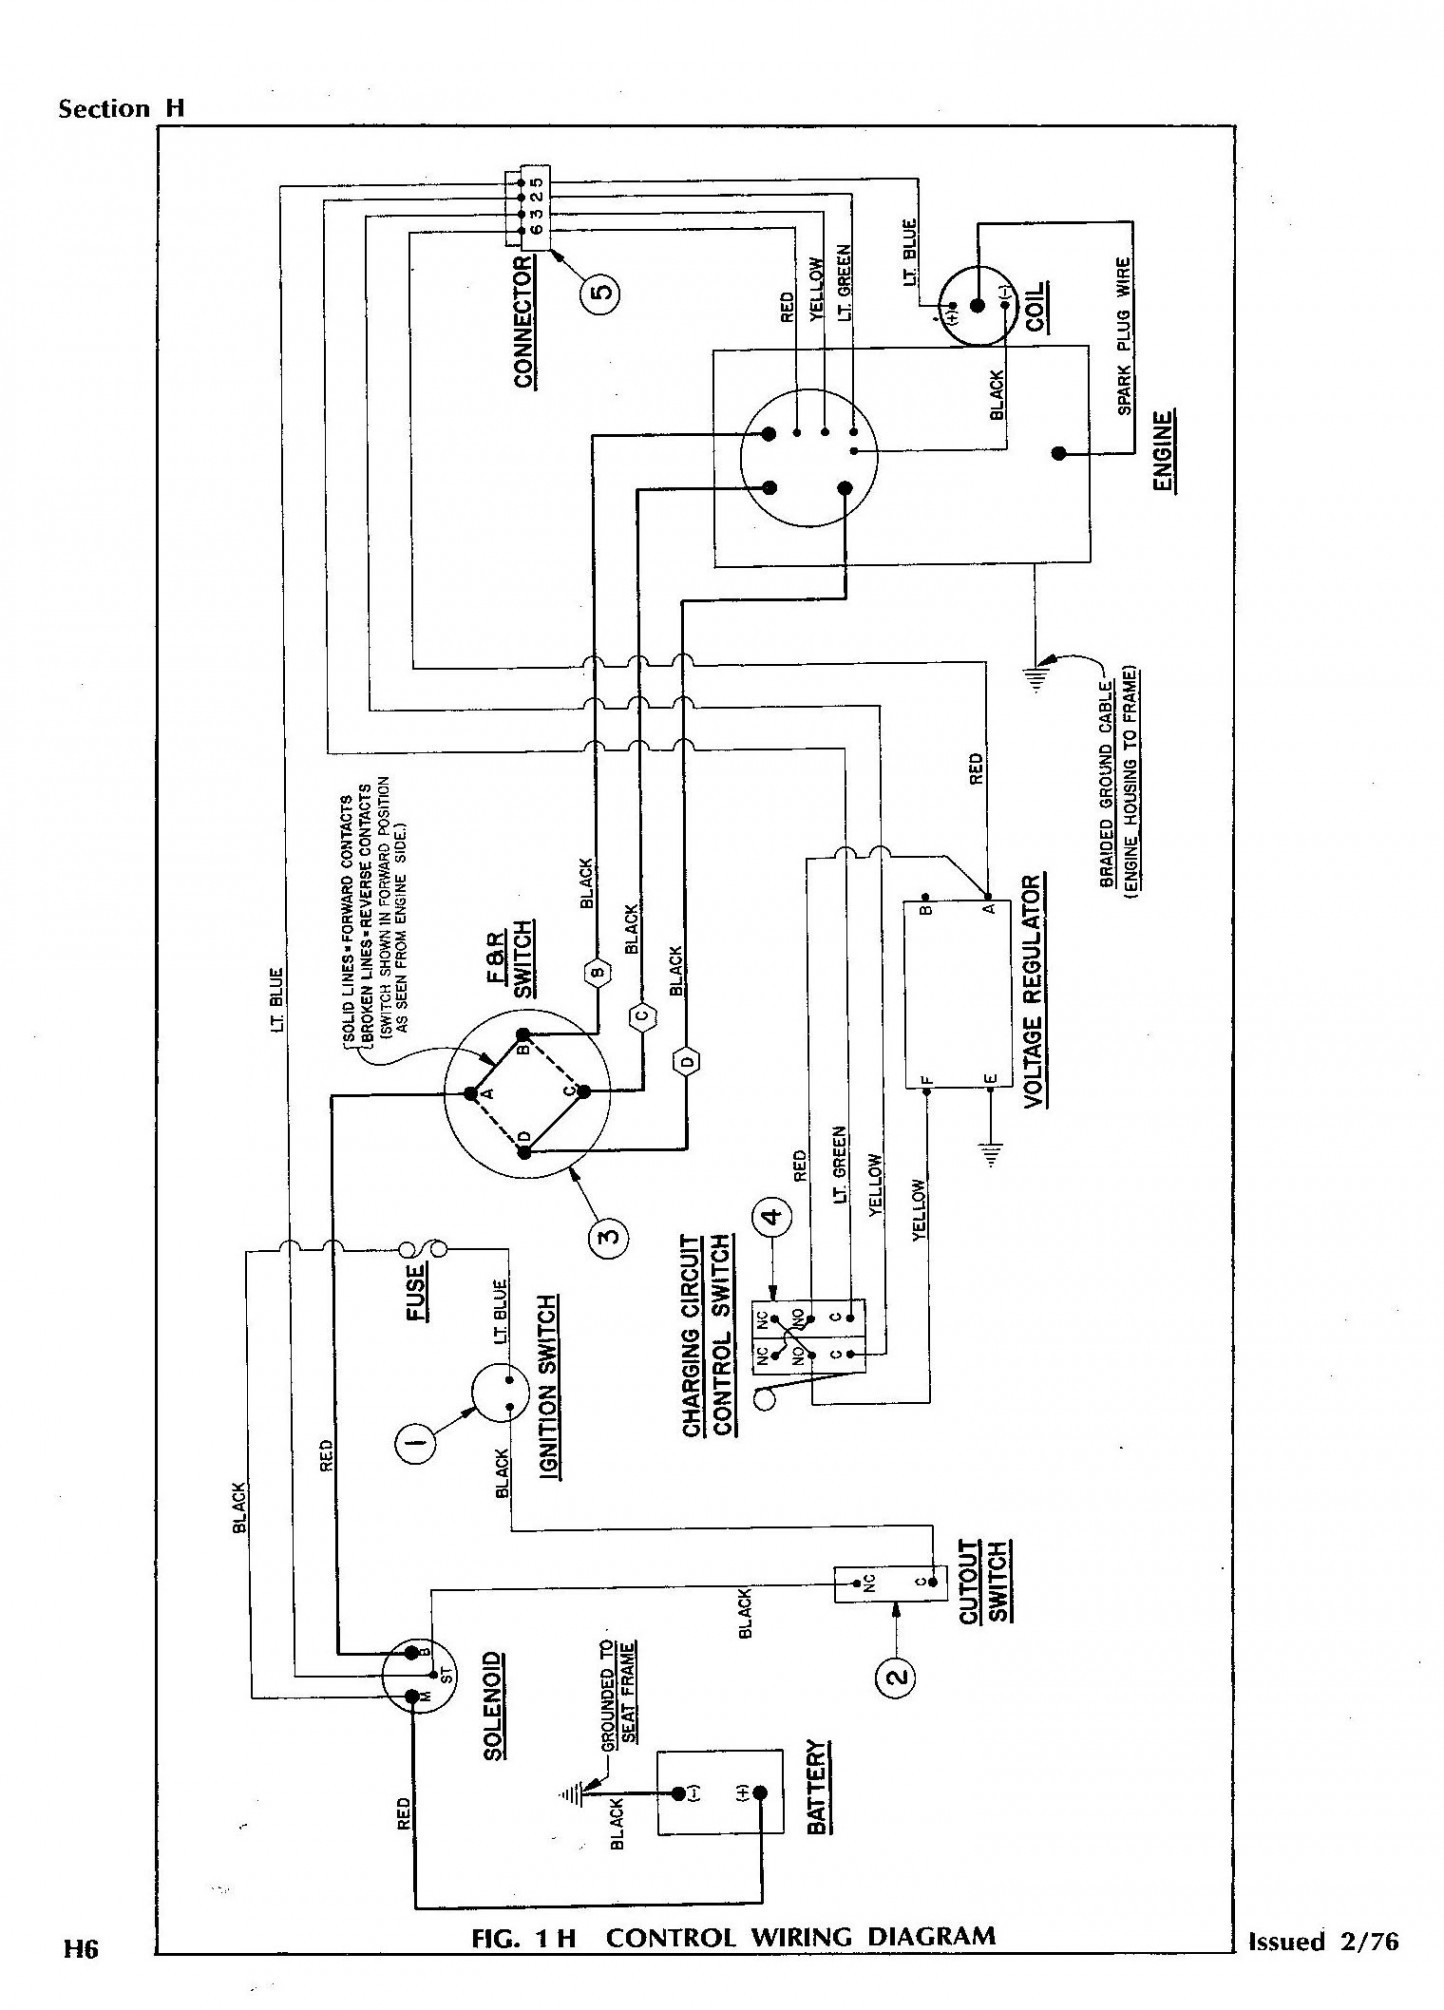 wiring diagram for yamaha g9 golf cart wiring diagram for harley davidson golf cart